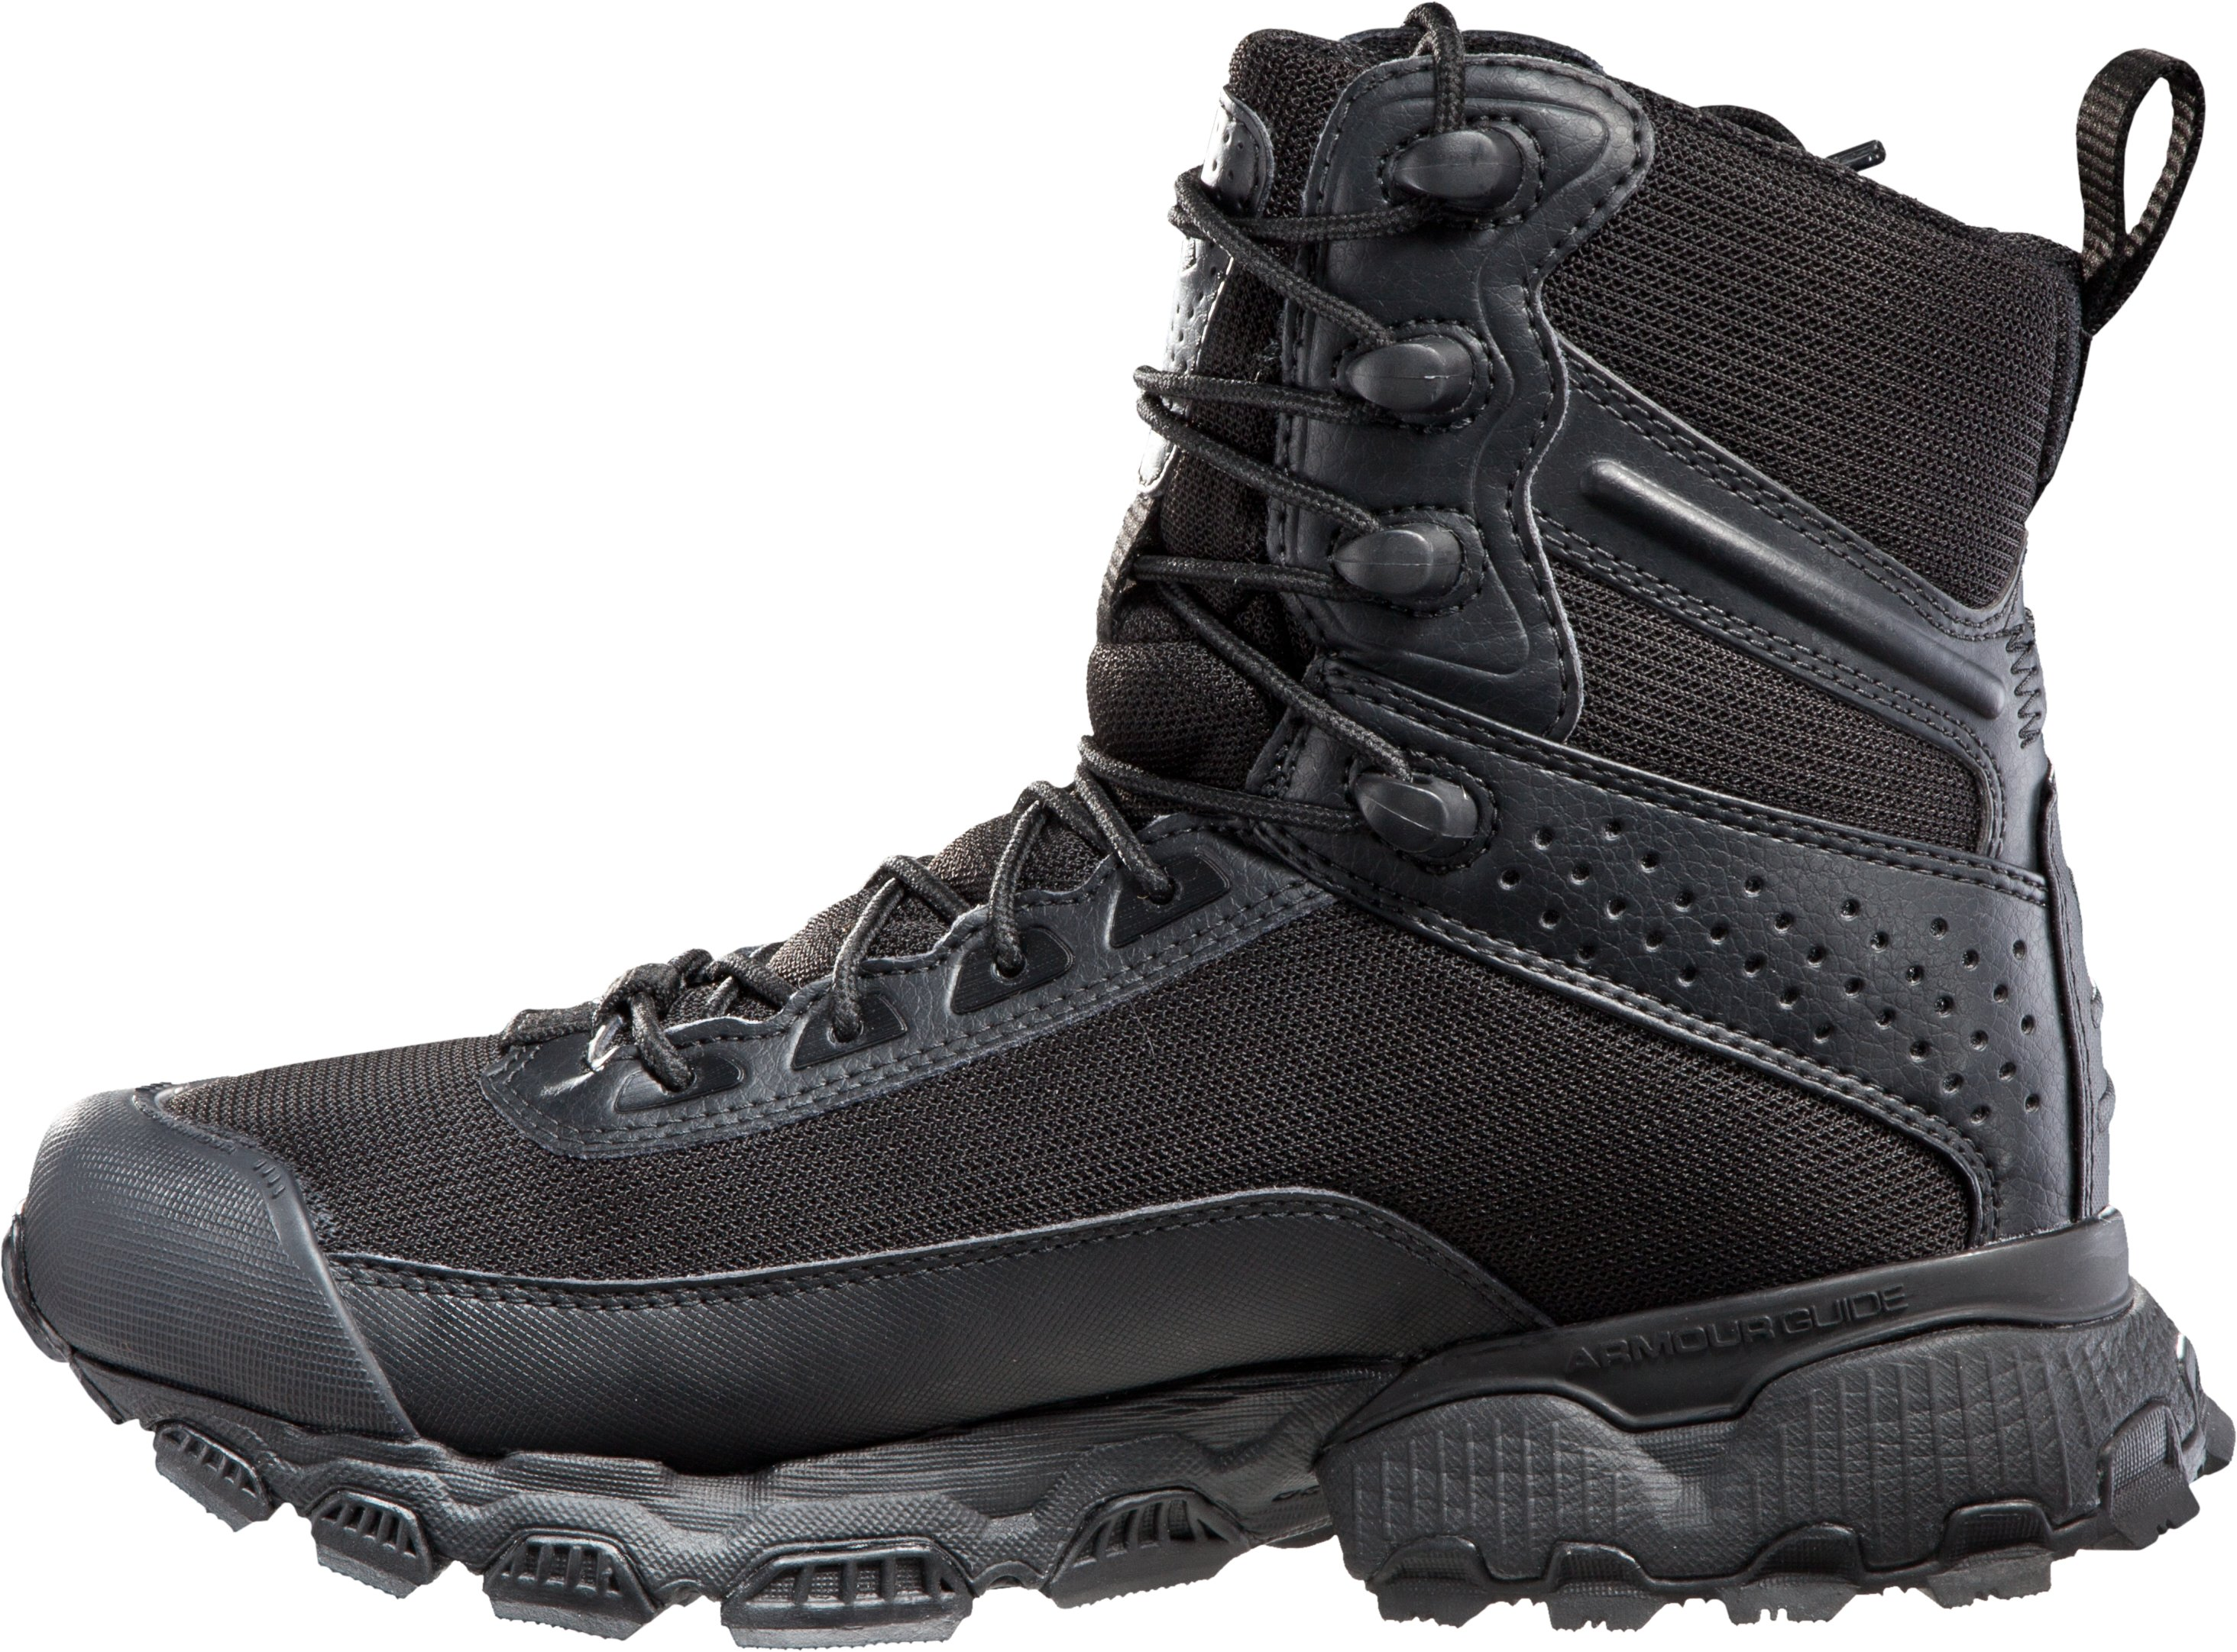 Women's Valsetz Boots, Black , undefined